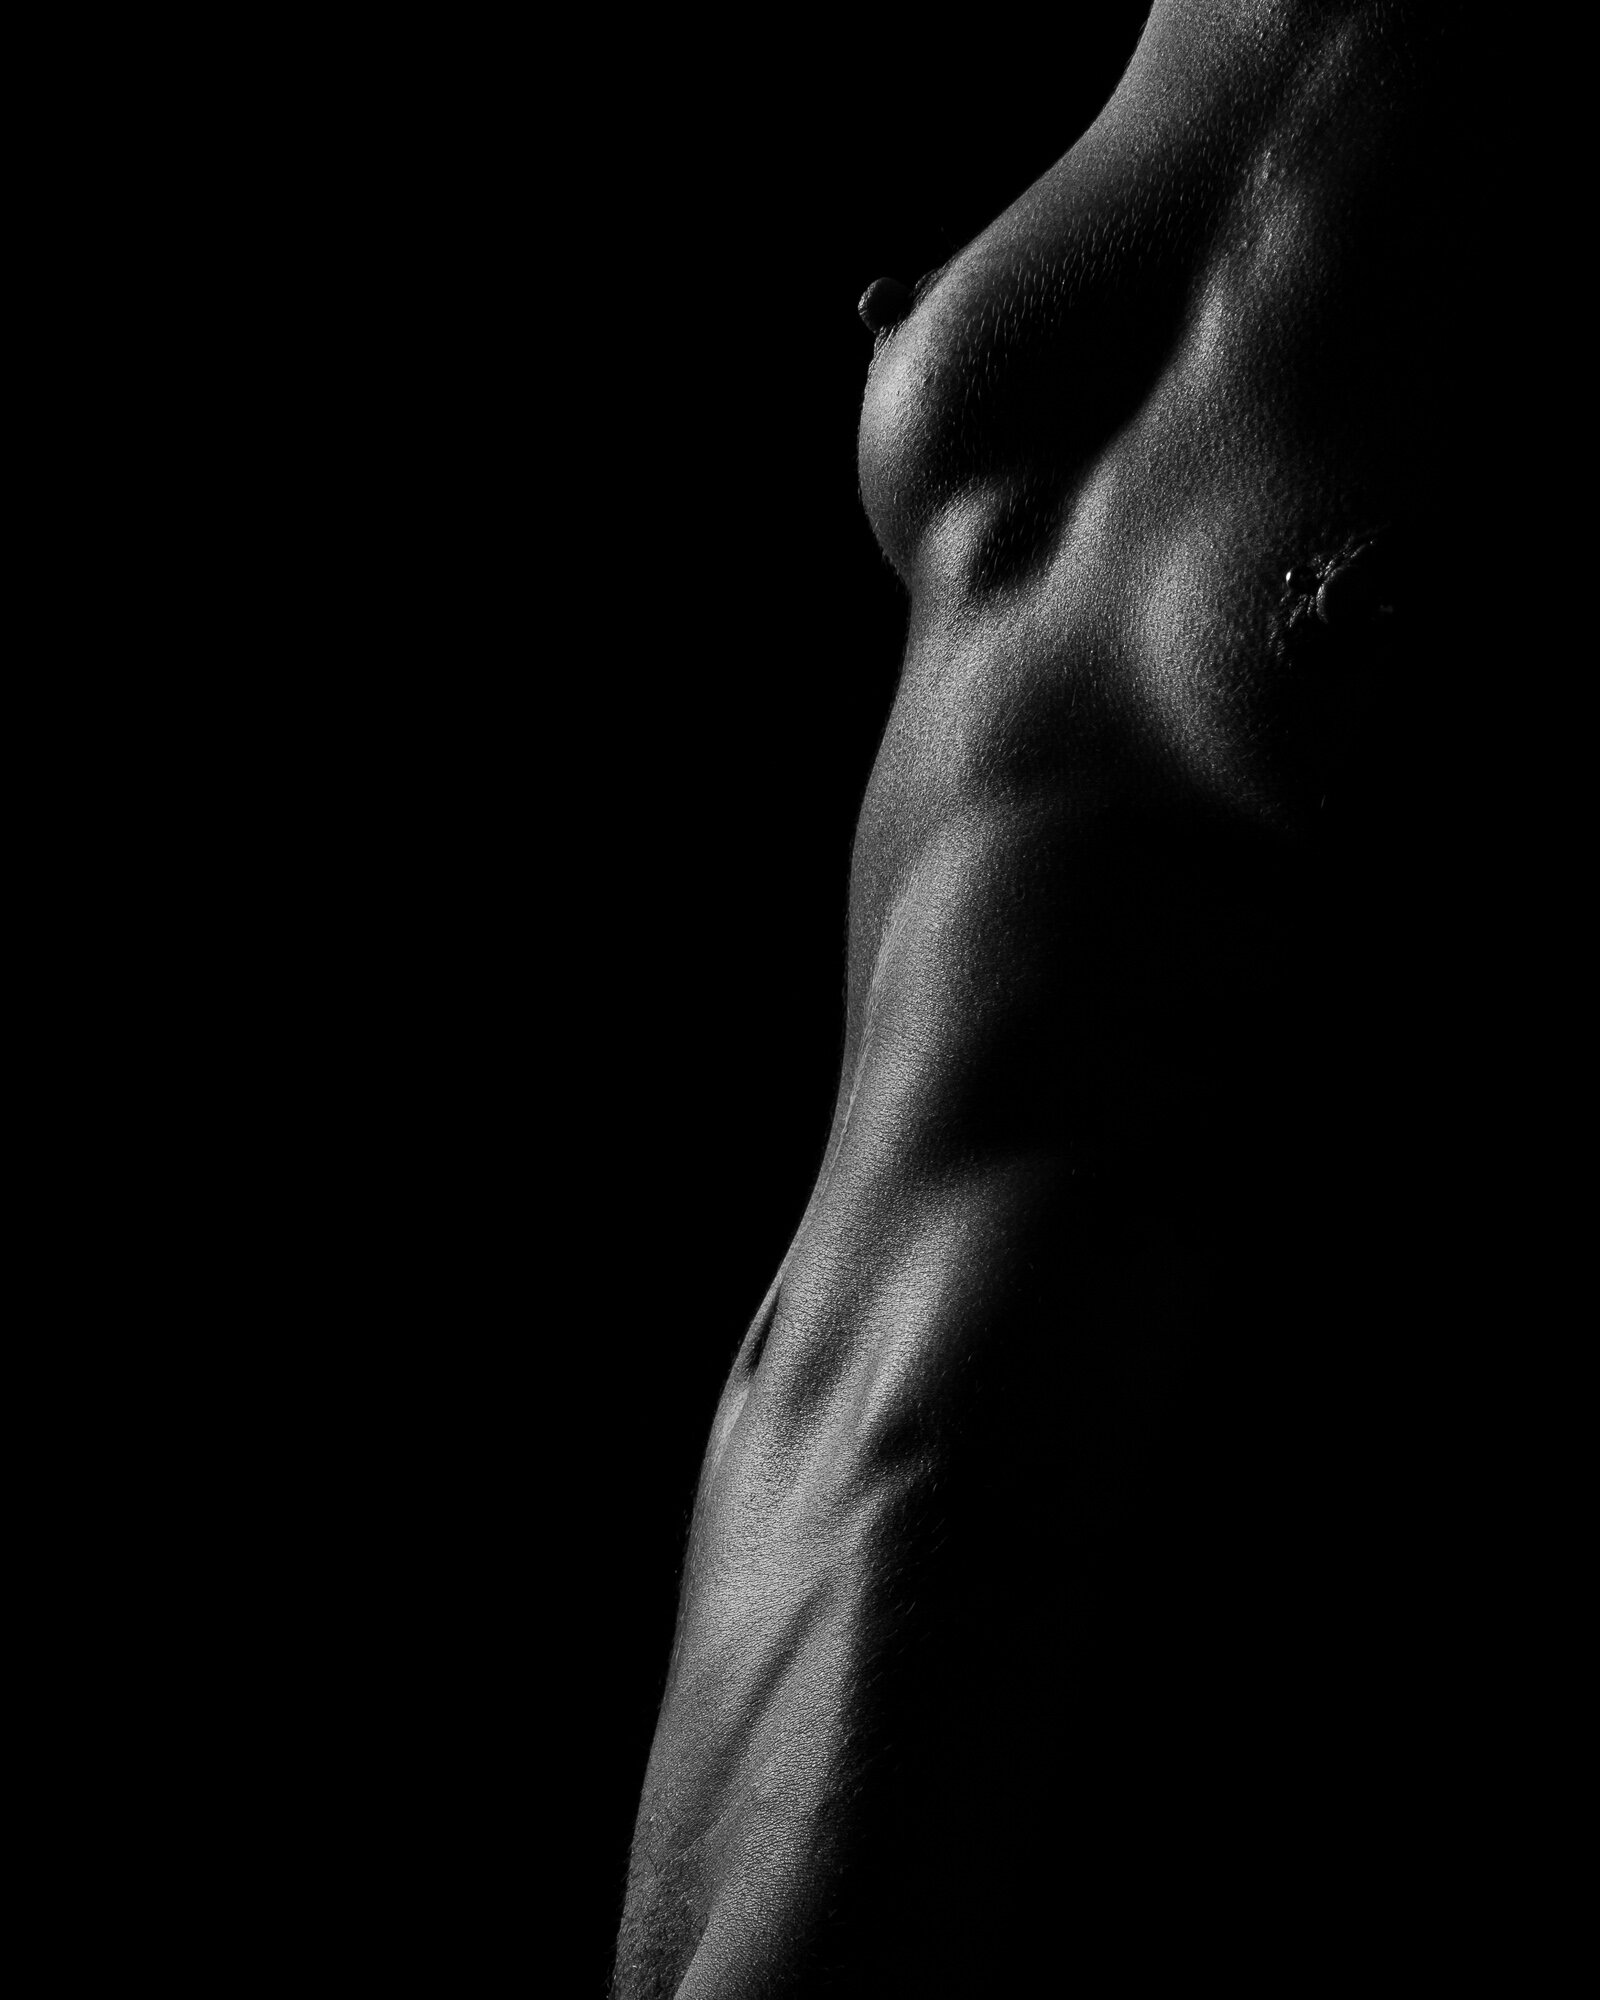 hips-abs-breasts-bodyscape.jpg